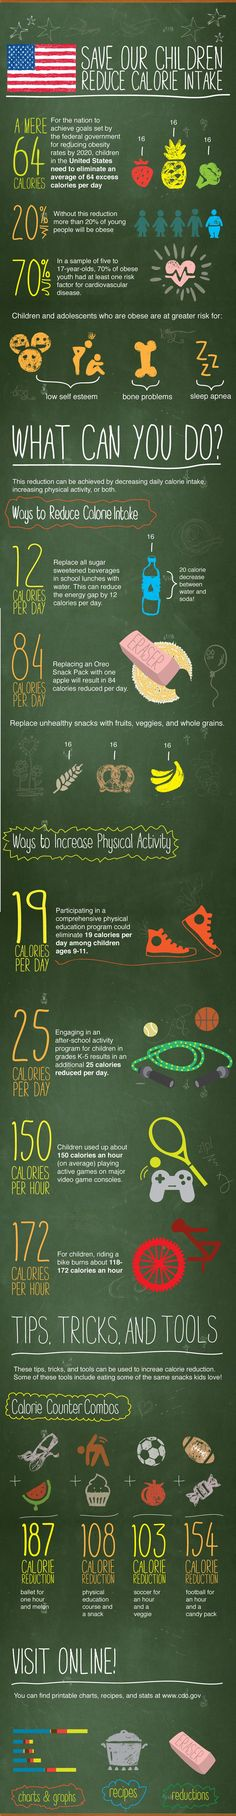 This Infographic shows that a mere 65 calorie reduction could prevent childhood obesity in America.